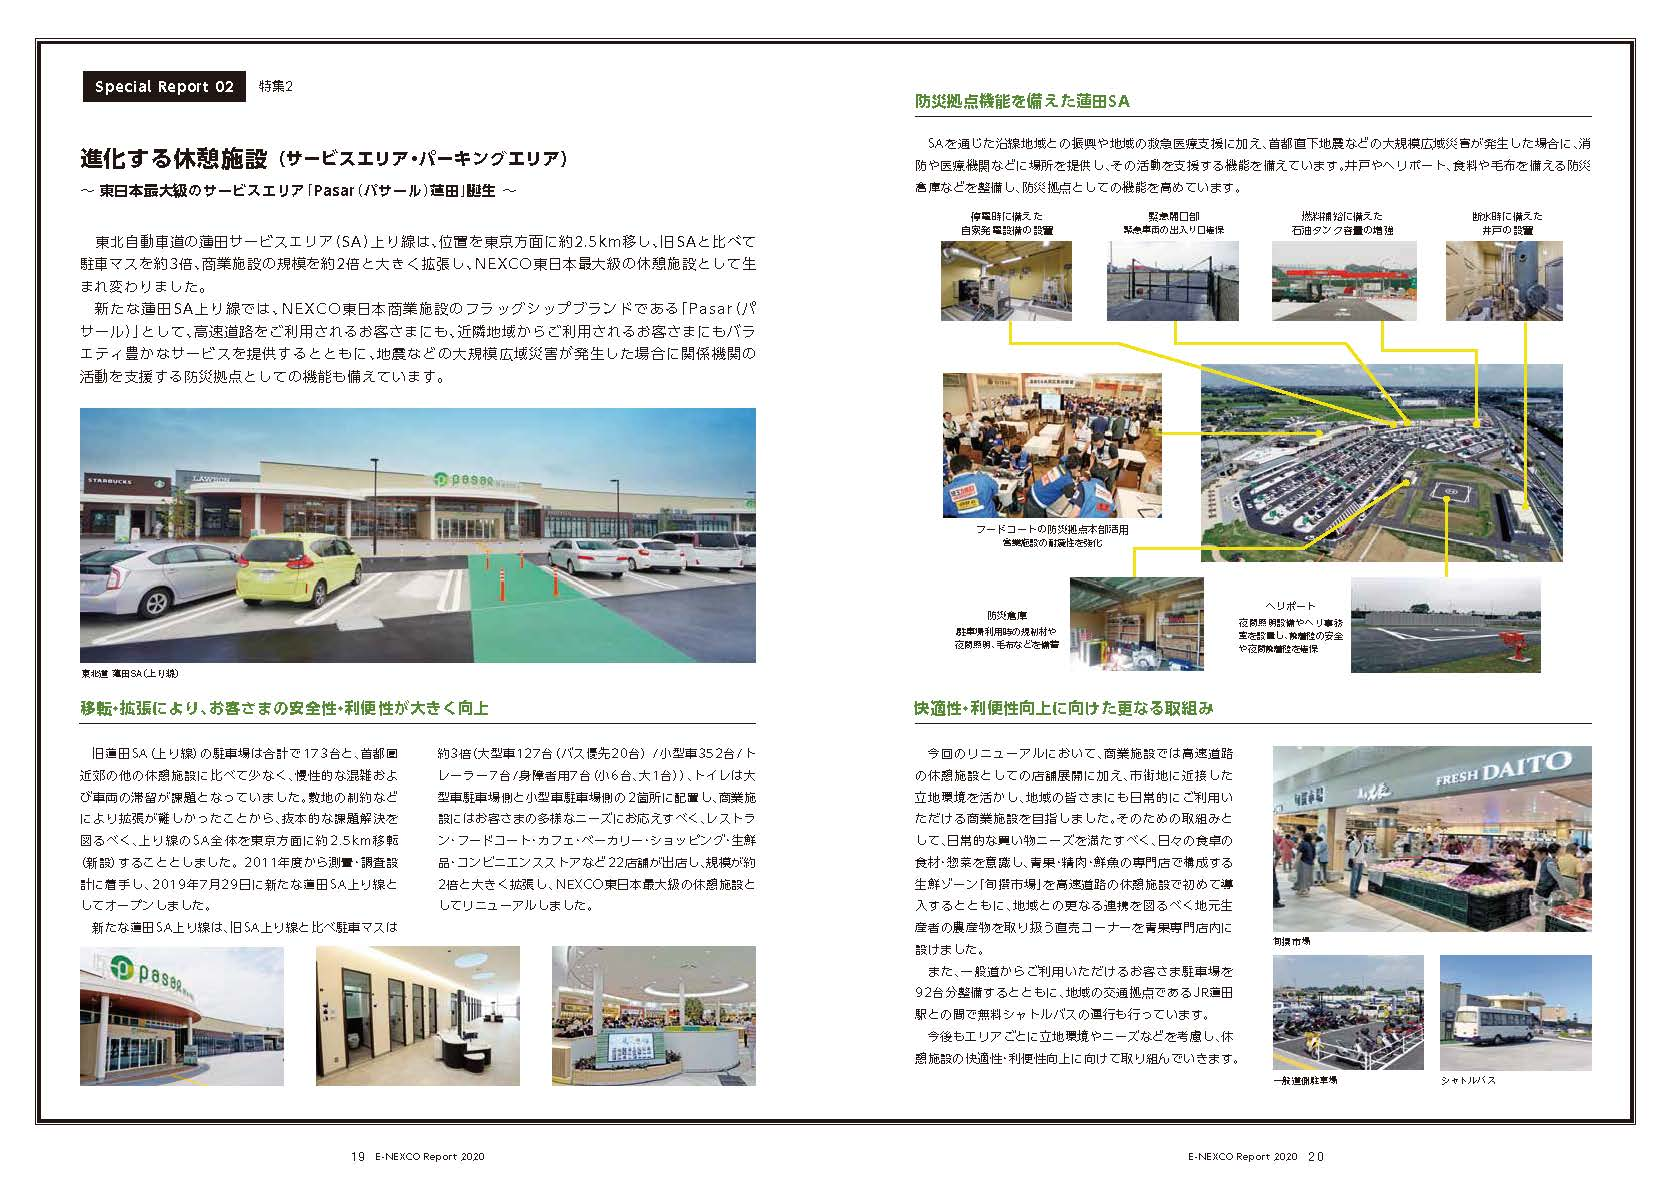 Special Feature 02 Evolving Rest Facility (Service Area/Parking Area) [PDF: 1MB] Image Link